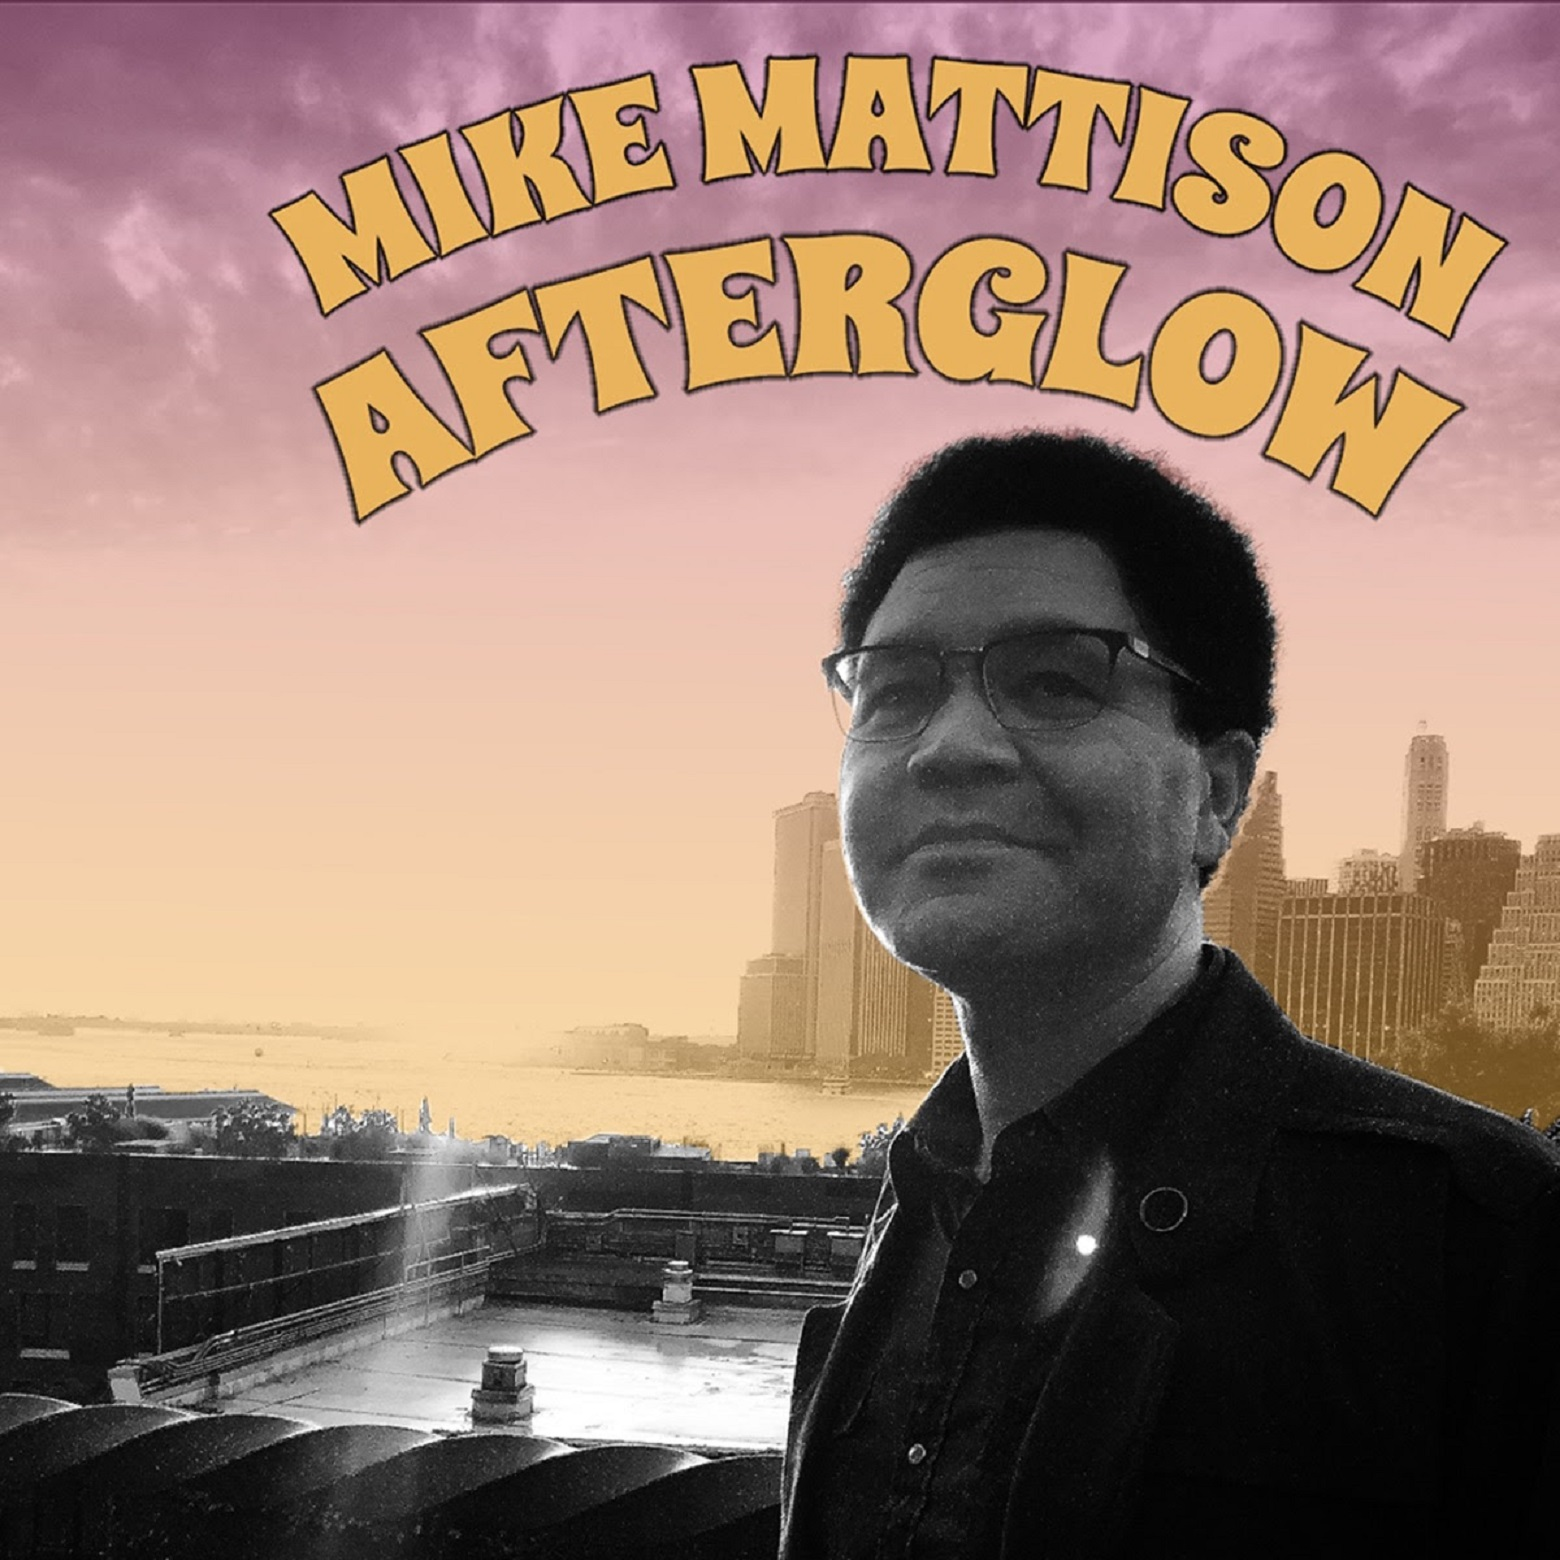 Tedeschi Trucks Band Member Mike Mattison to Release Solo Disc on March 20th